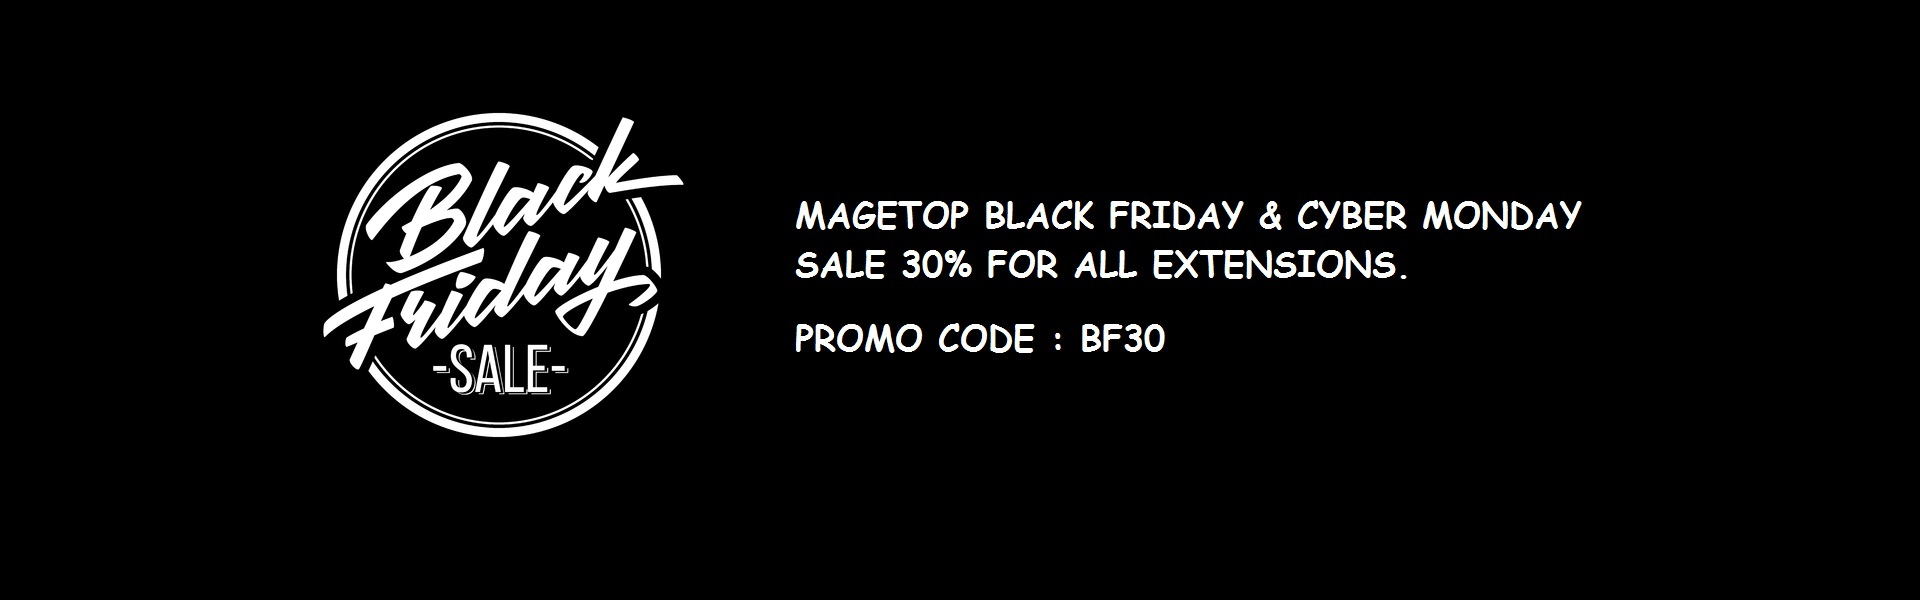 Magetop Black Friday